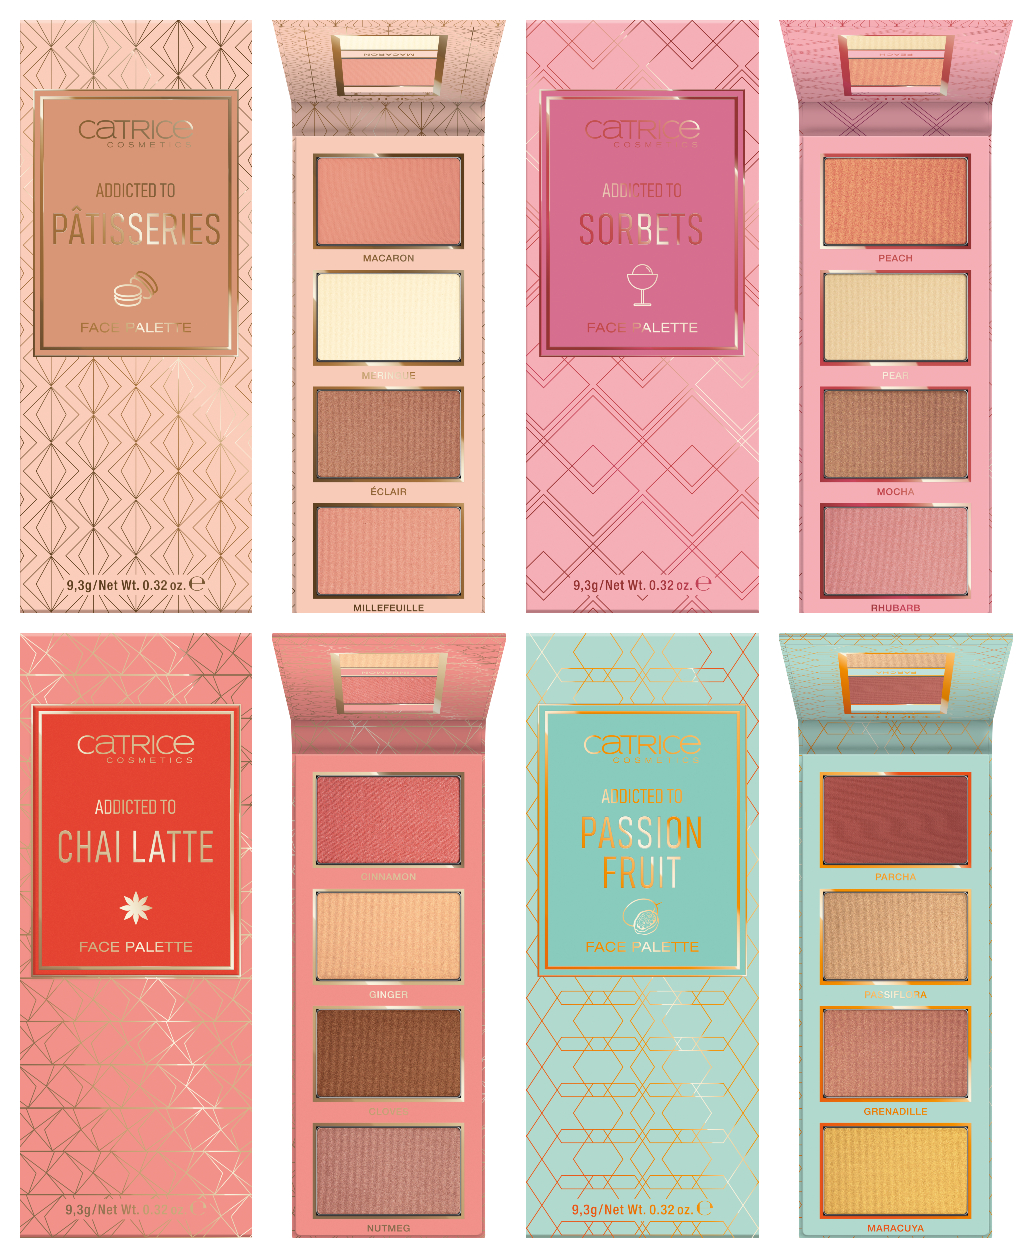 CATRICE face palettes